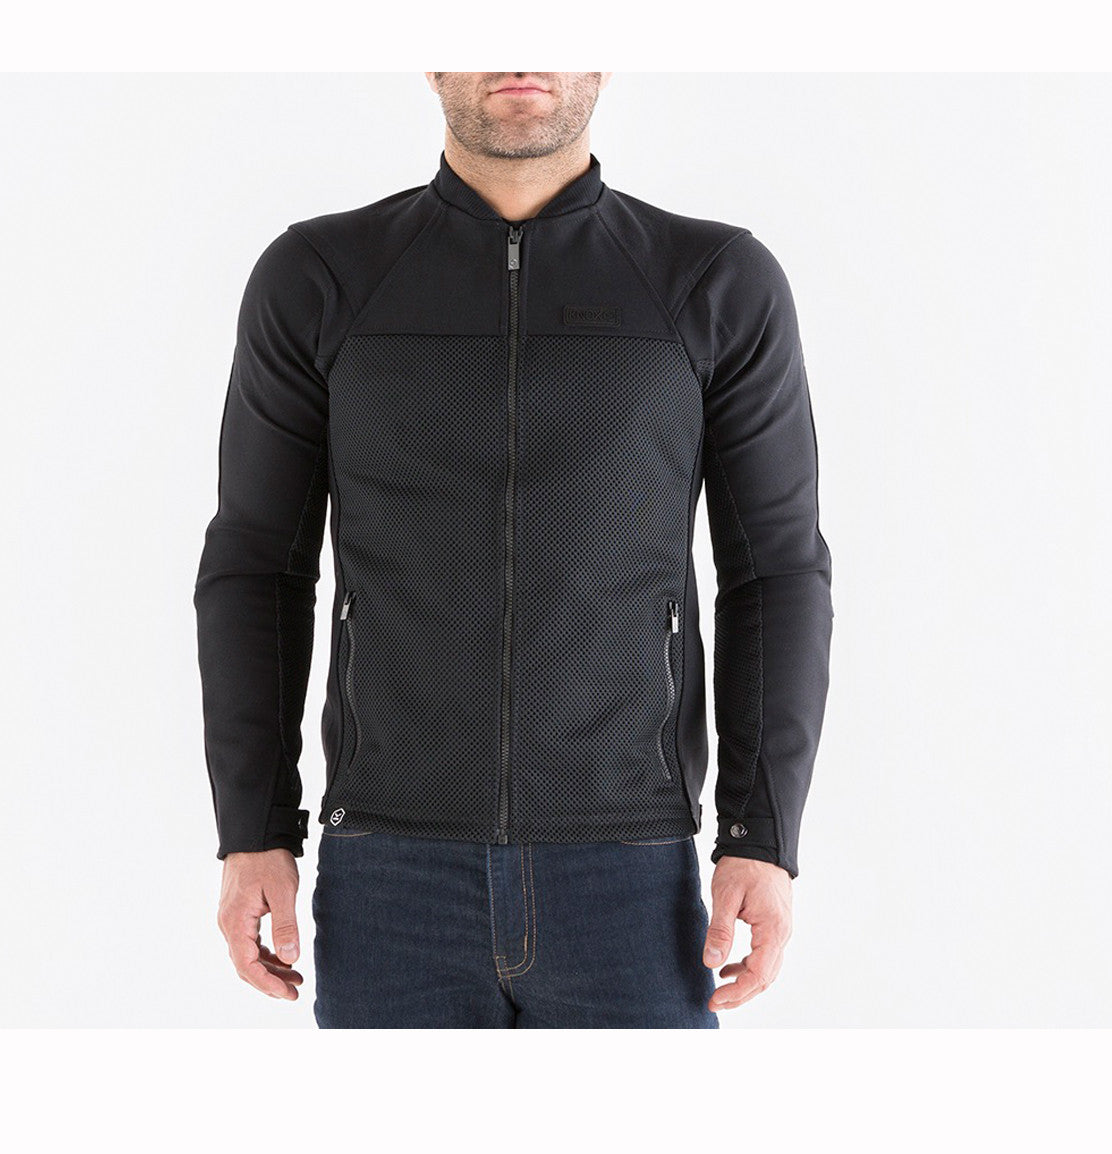 KNOX Zephyr Jacket